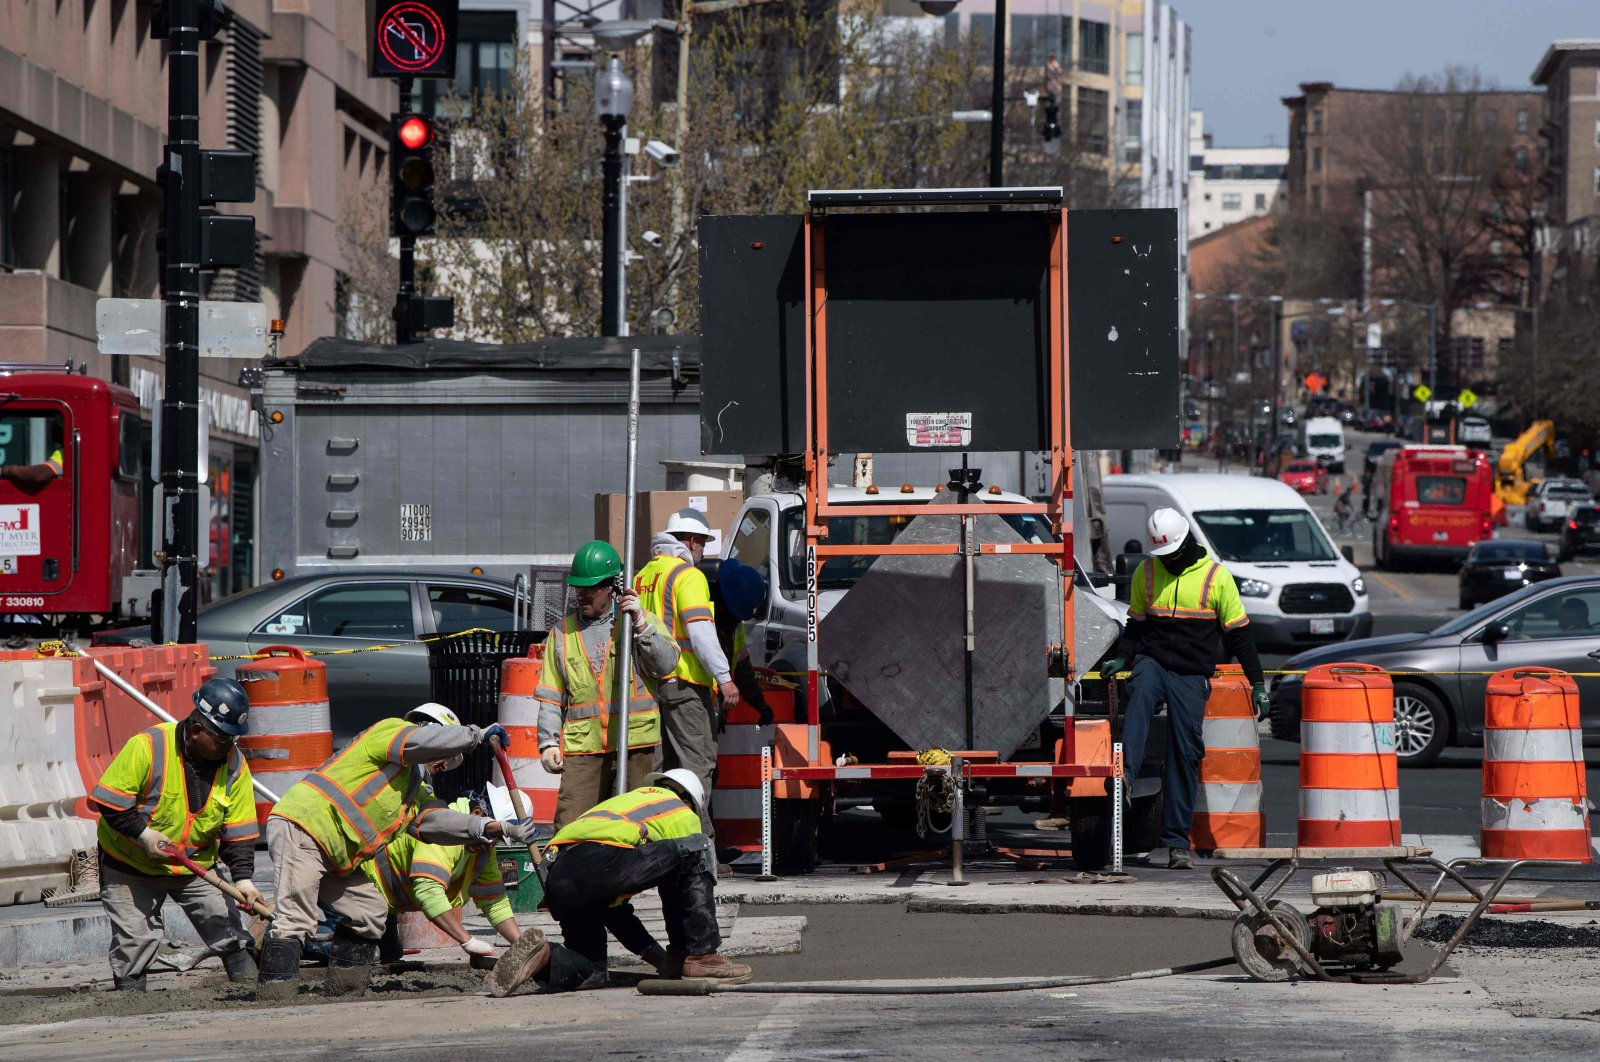 Workers repave a street in Washington, DC, on March 18, as the country deal with the novel coronavirus, COVID-19. (AFP Photo)